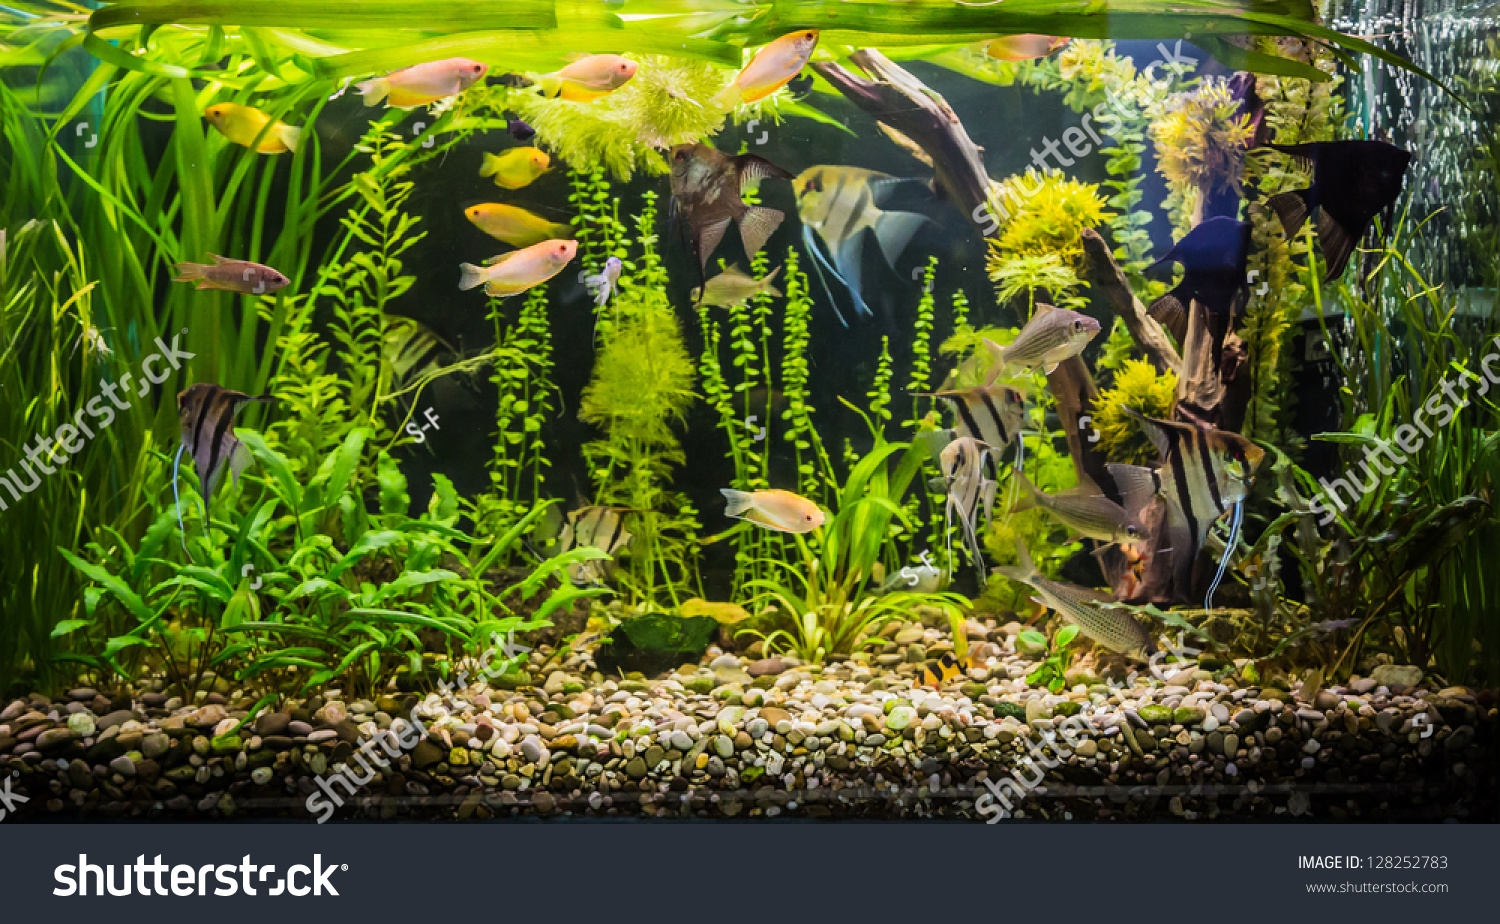 Freshwater Aquarium Fish In Dubai - A green beautiful planted tropical freshwater aquarium with fishes